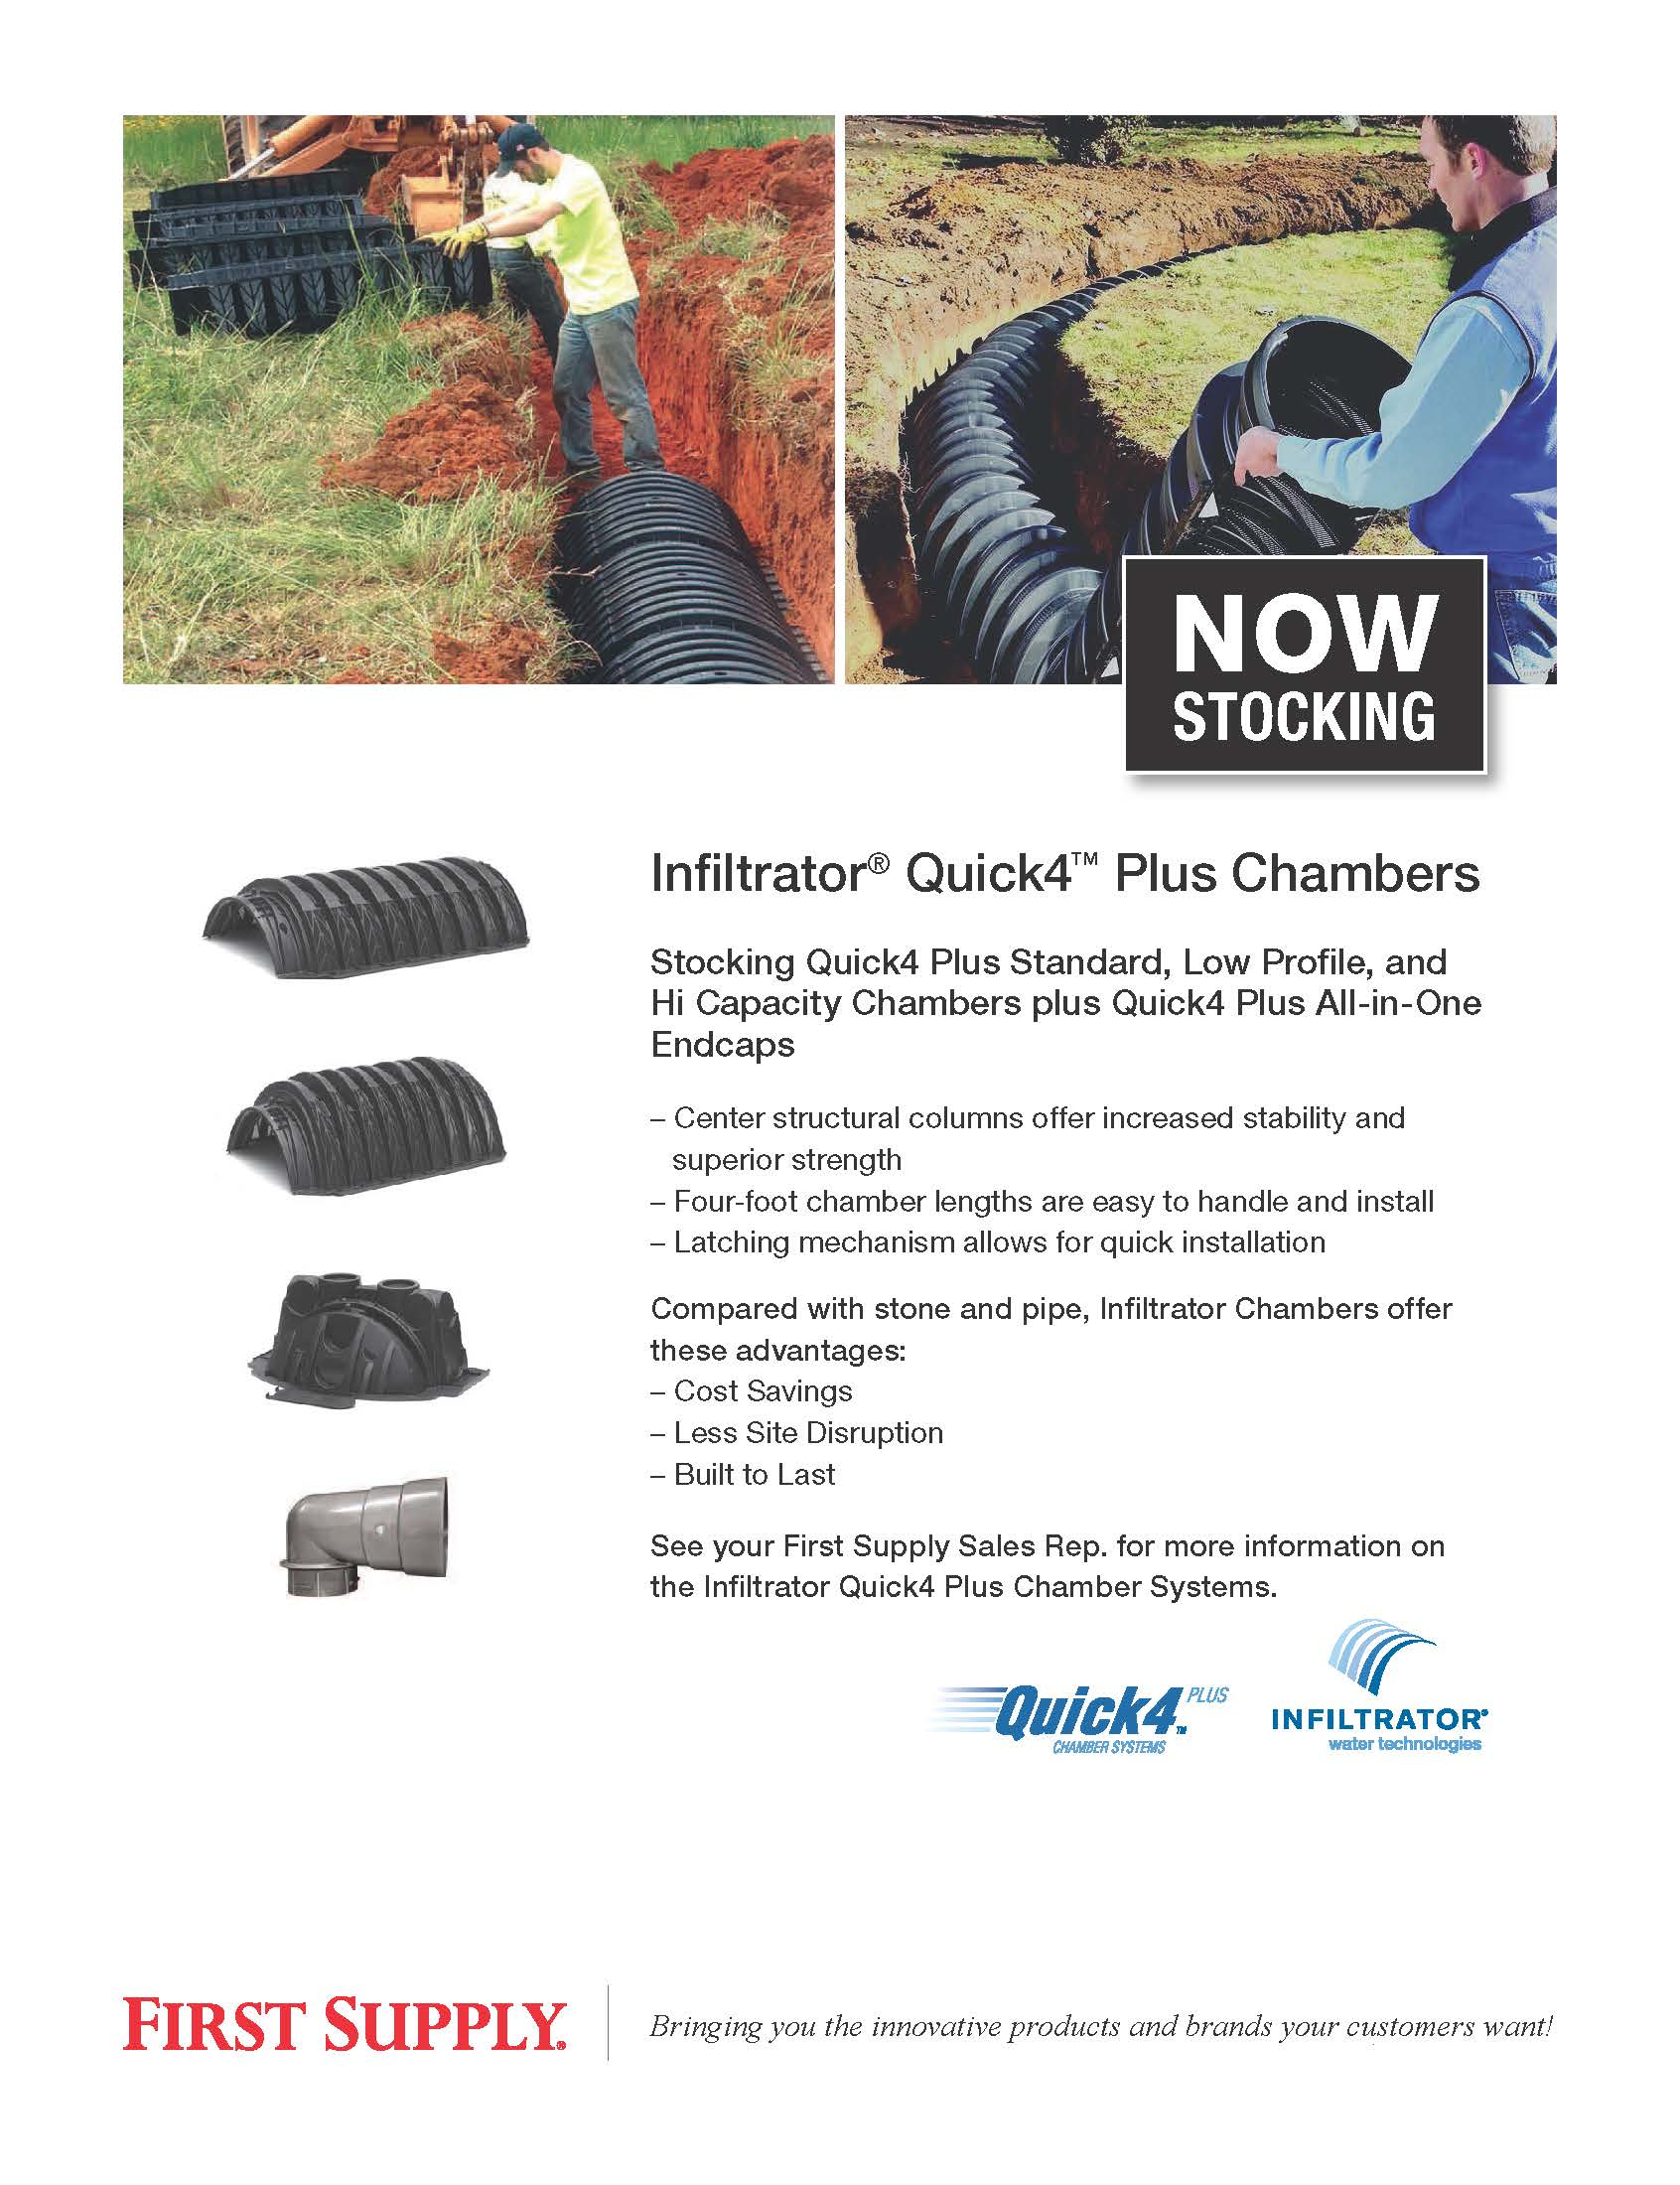 Infiltrator Quick4 Plus Chambers [ download pdf ]